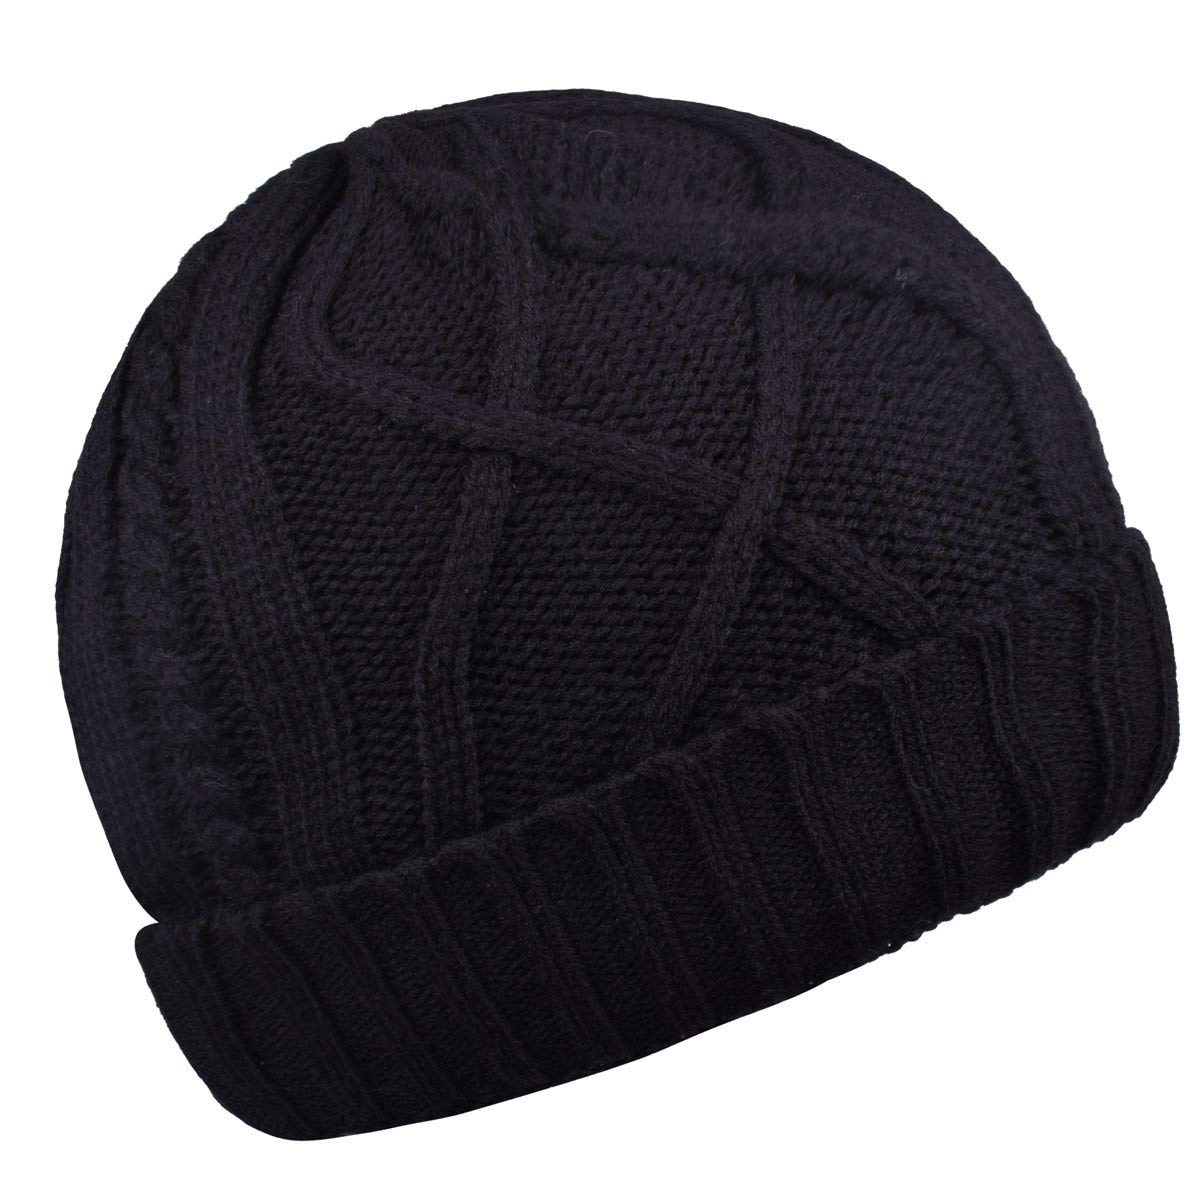 2cbc6c8292e Get Quotations · Cotton Skull Cap Slouch Hat Thick Knit Winter Ski Caps Beanie  Hats for Women And Men